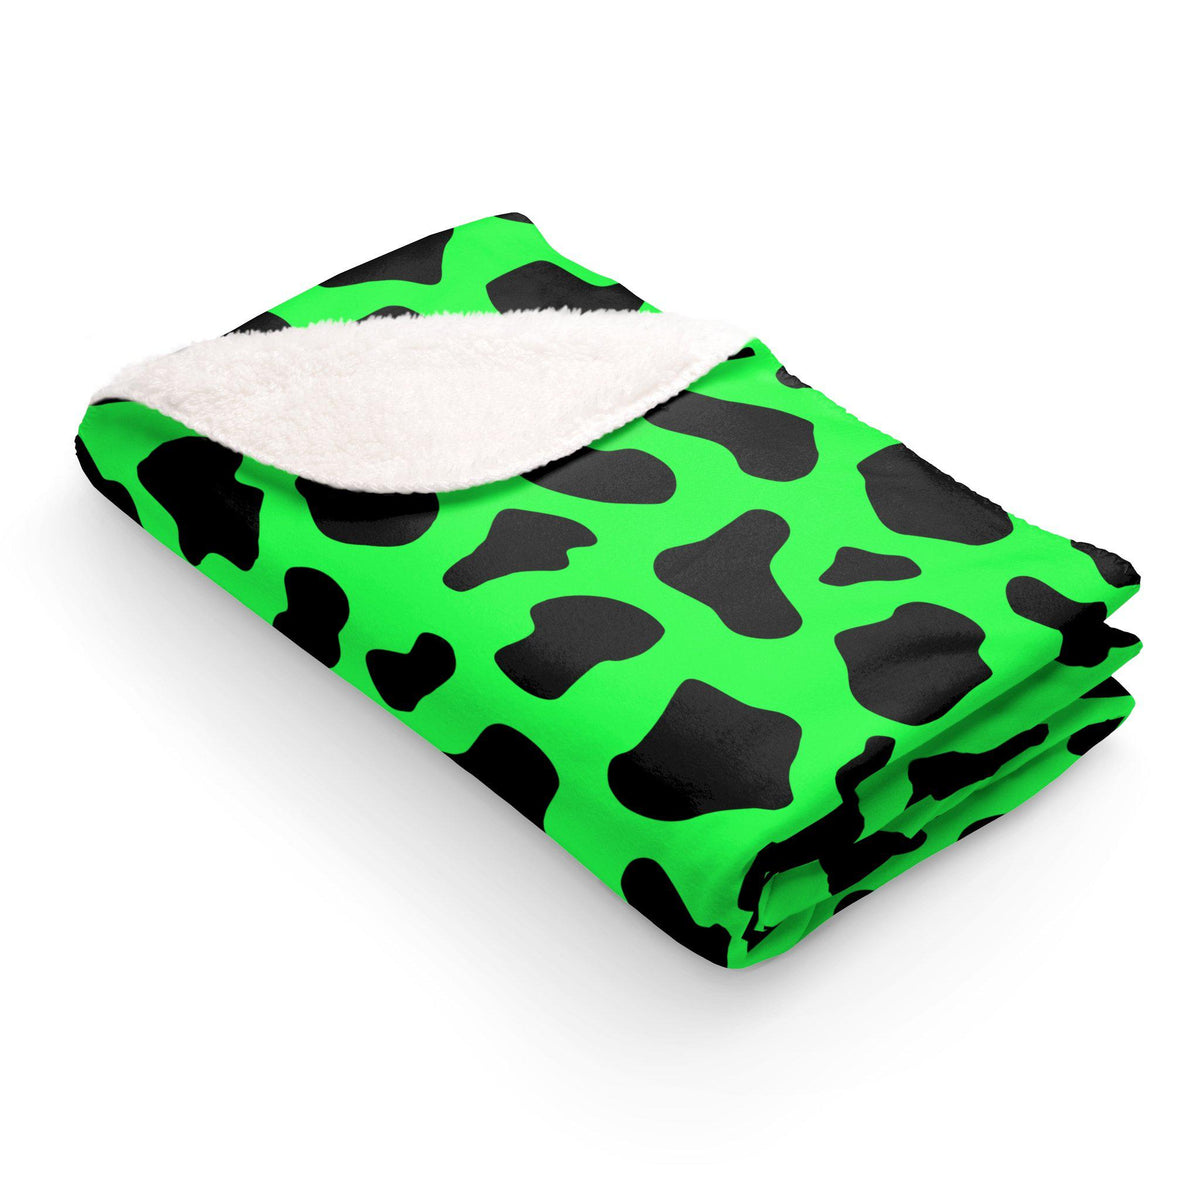 Maison d'Elite Sherpa Fleece Blanket-Home - Throws & Blankets-Maison d'Elite-50x60-Green-Fleece-Très Elite